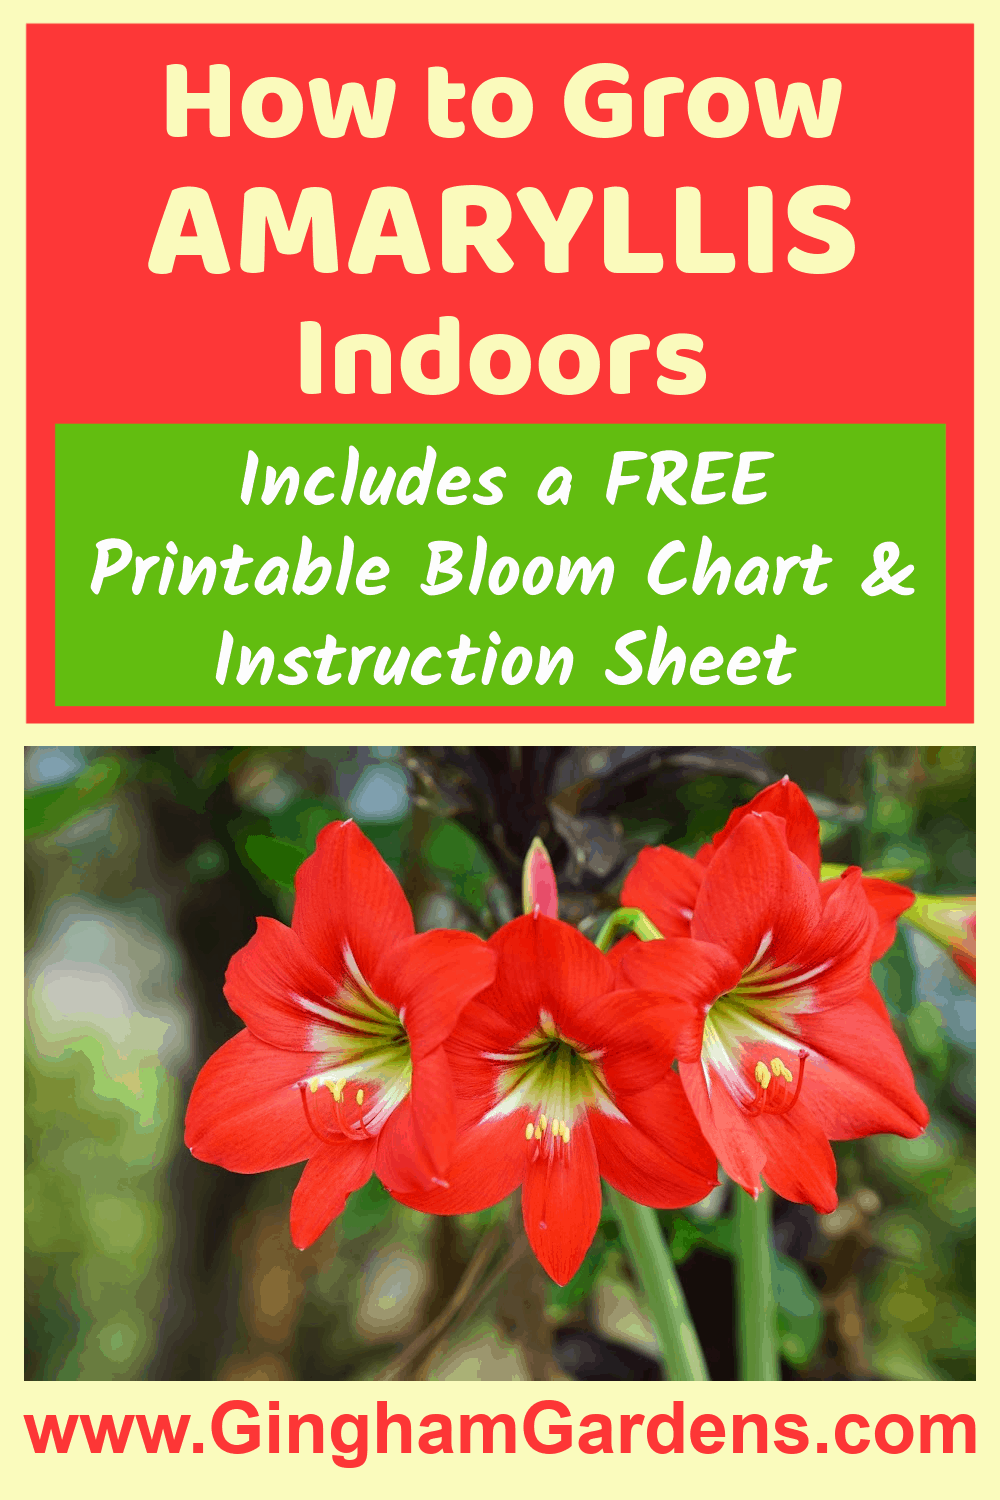 Image of an Amaryllis flower with text overlay - How to Grow Amaryllis Indoors